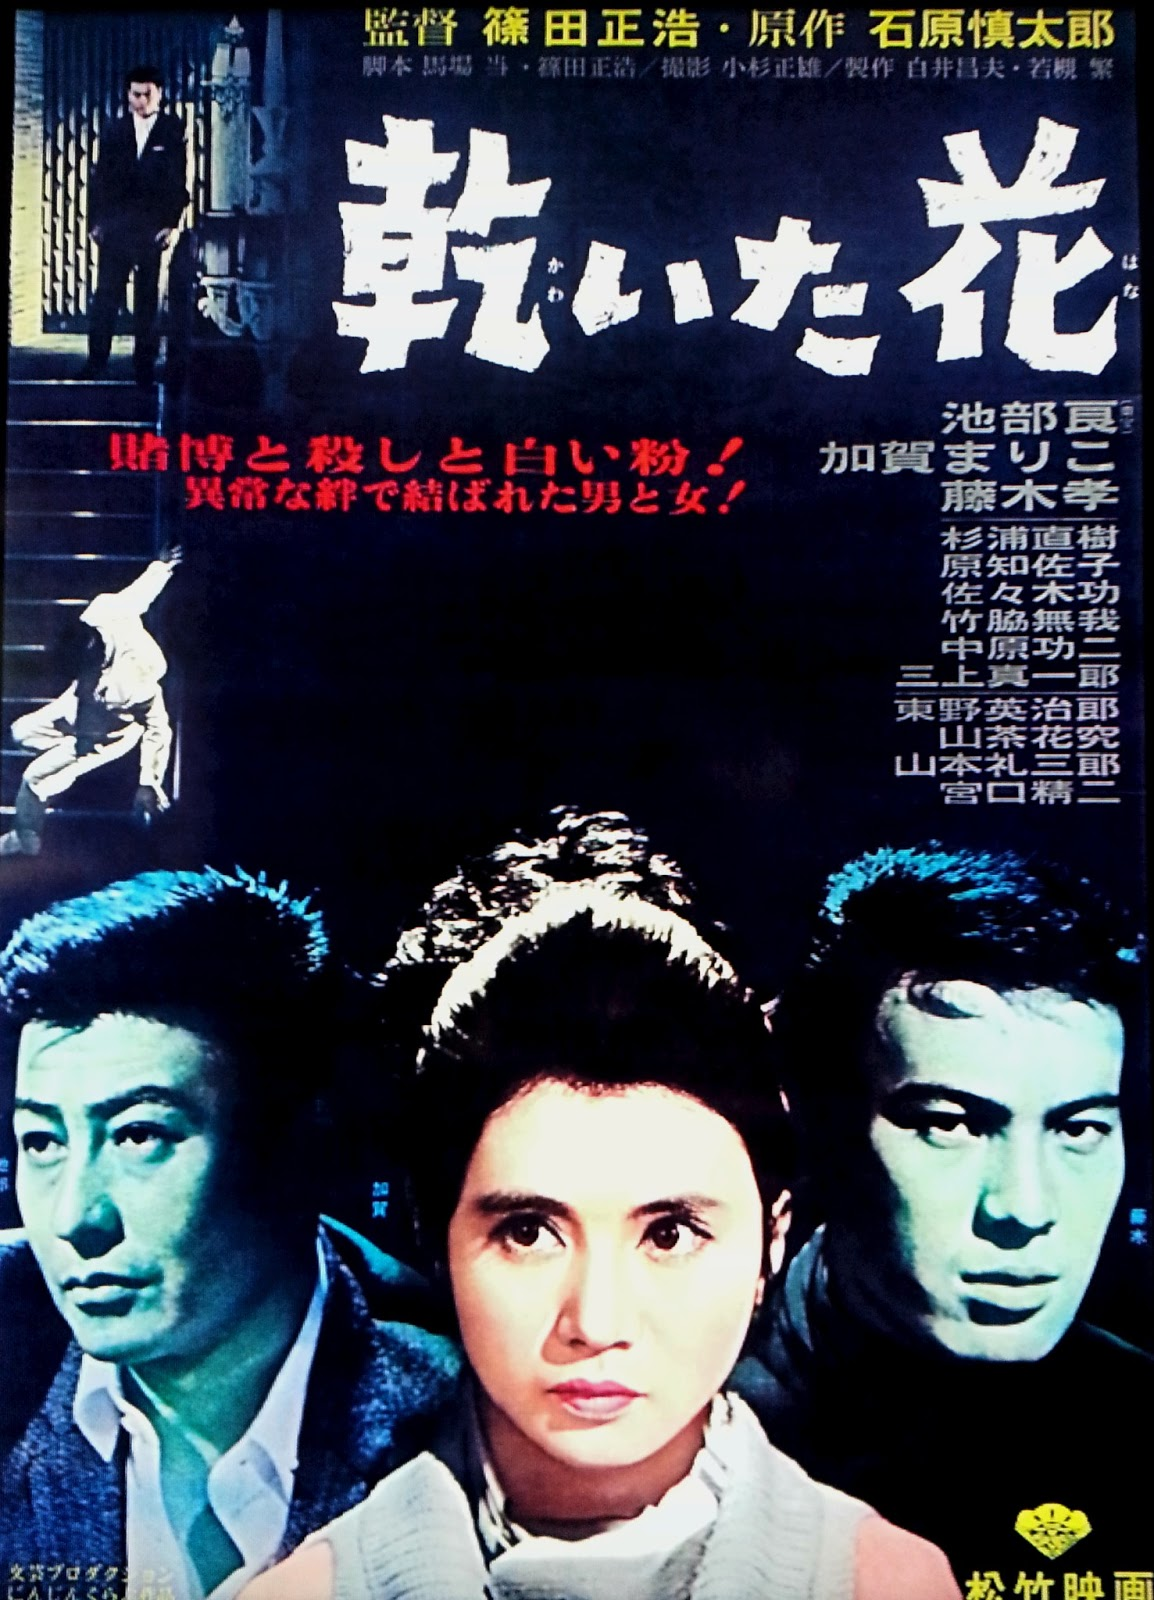 Japanese Fashion in Film: 1960s and 70s – The New Wave | AJET